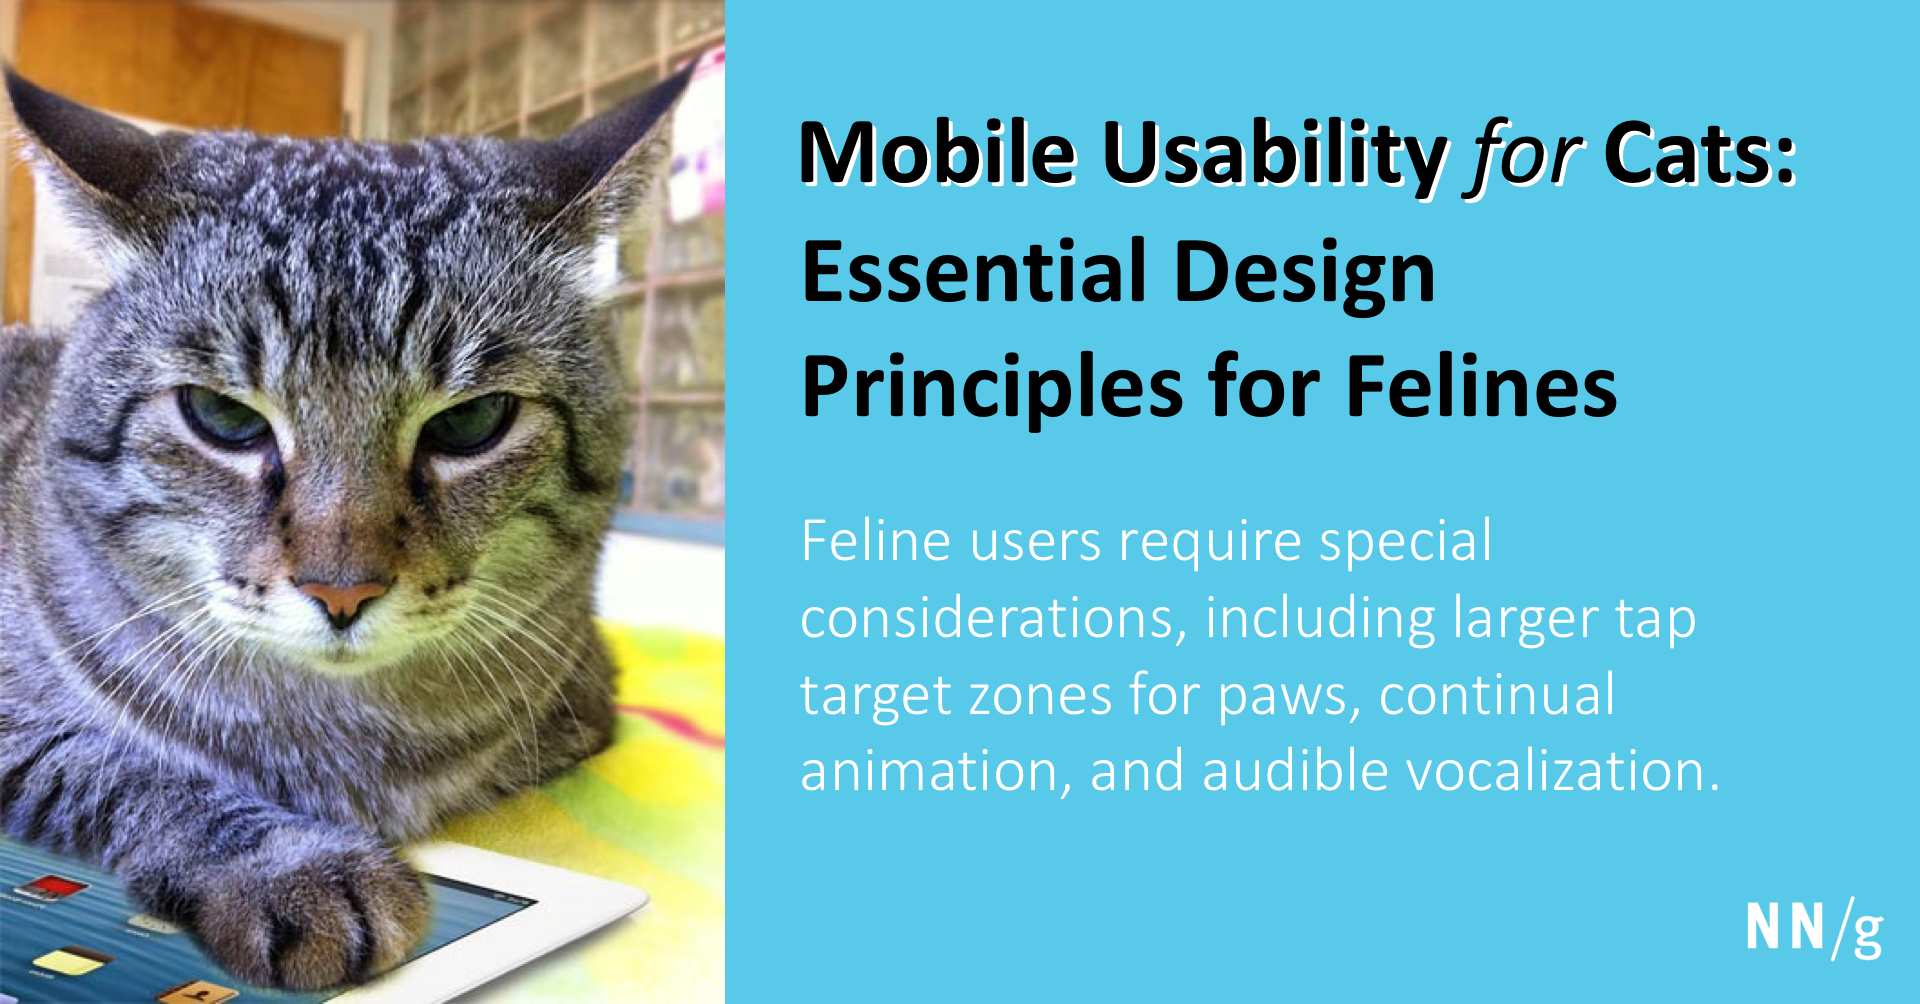 Mobile Usability for Cats: Essential Design Principles for Felines